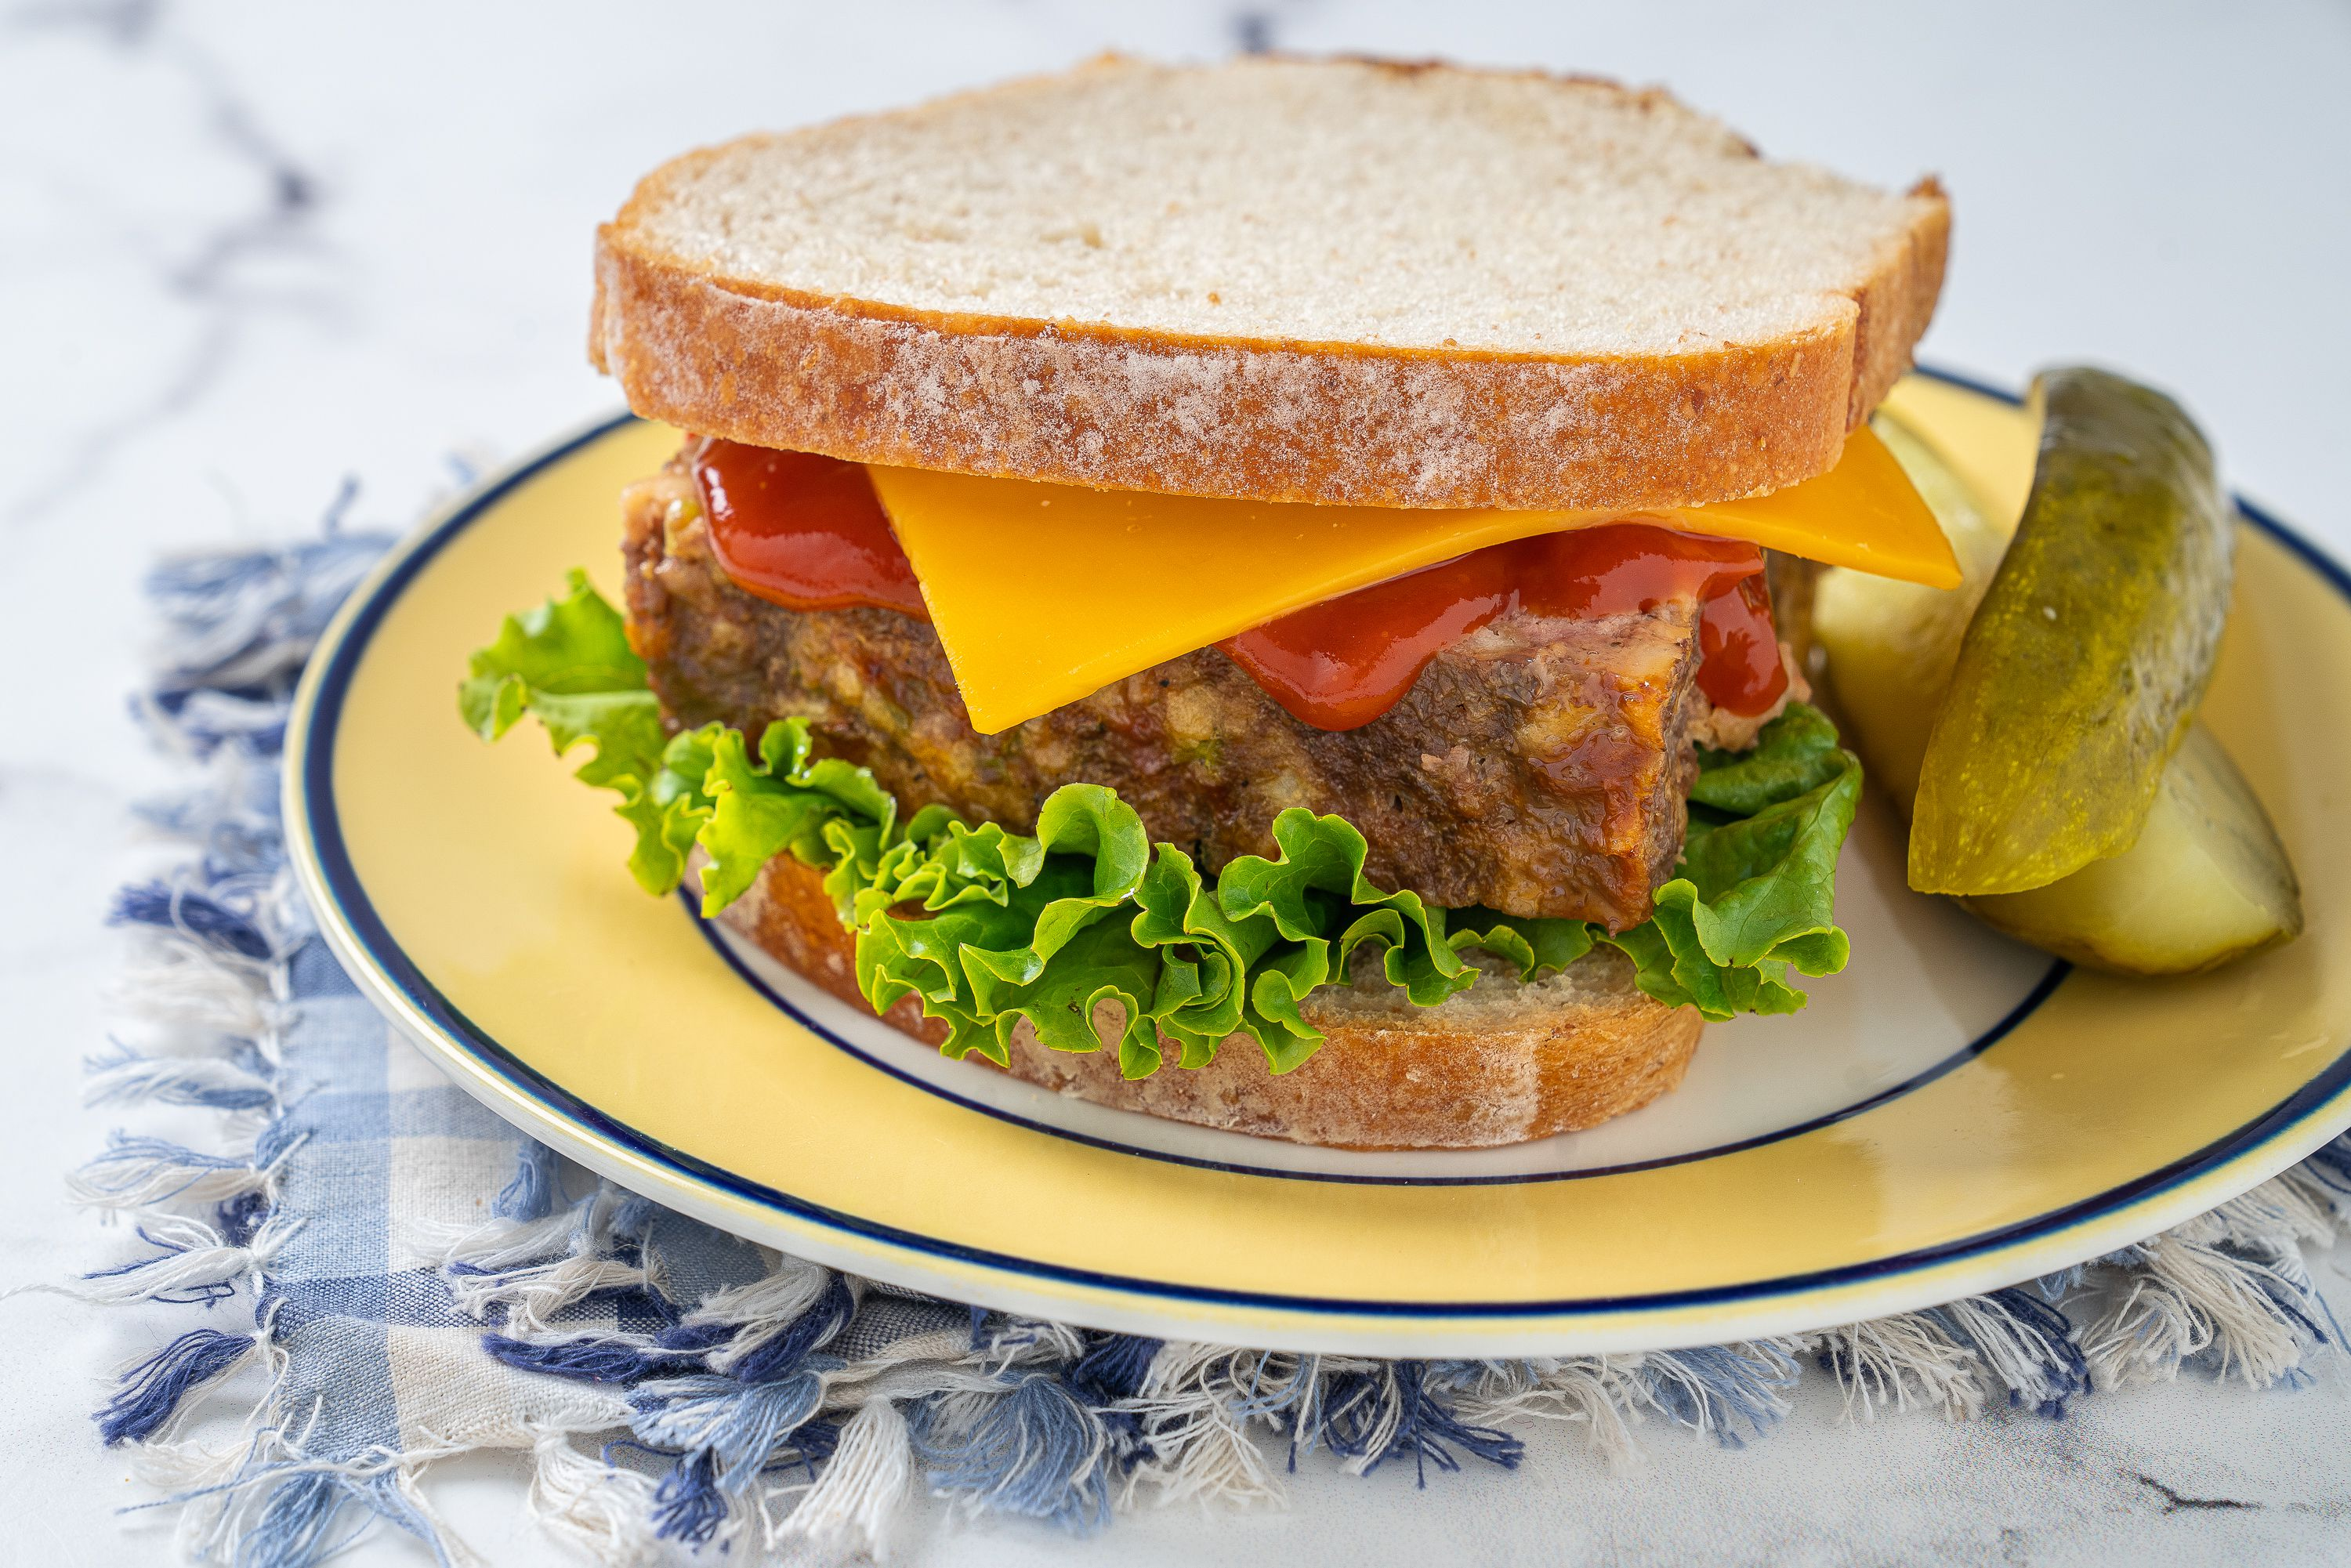 Most Popular Ingredients to Make Ready Meatloaf Sandwich